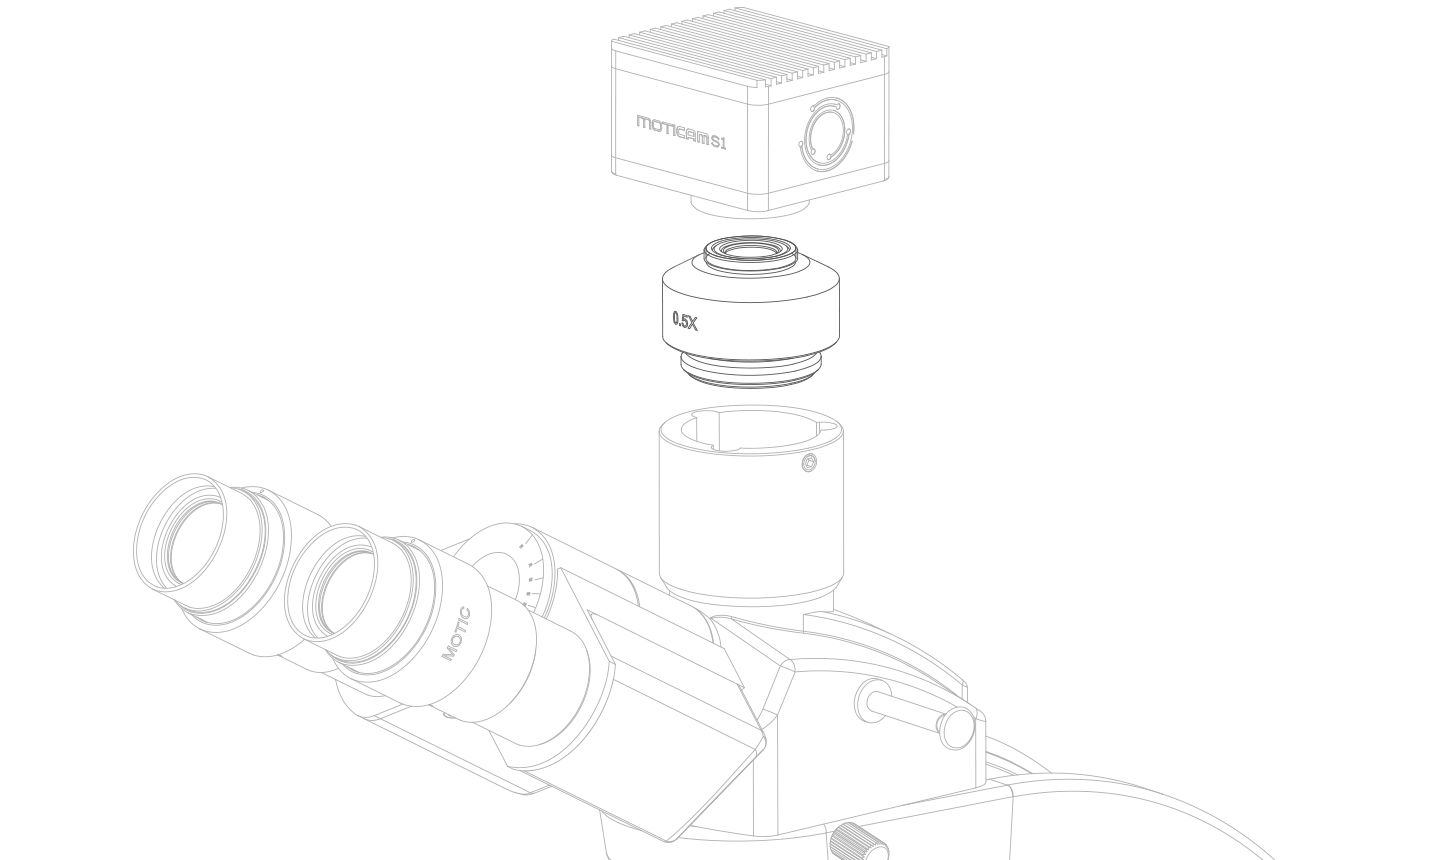 safety recommendations - c-mount adapter microscope drawing